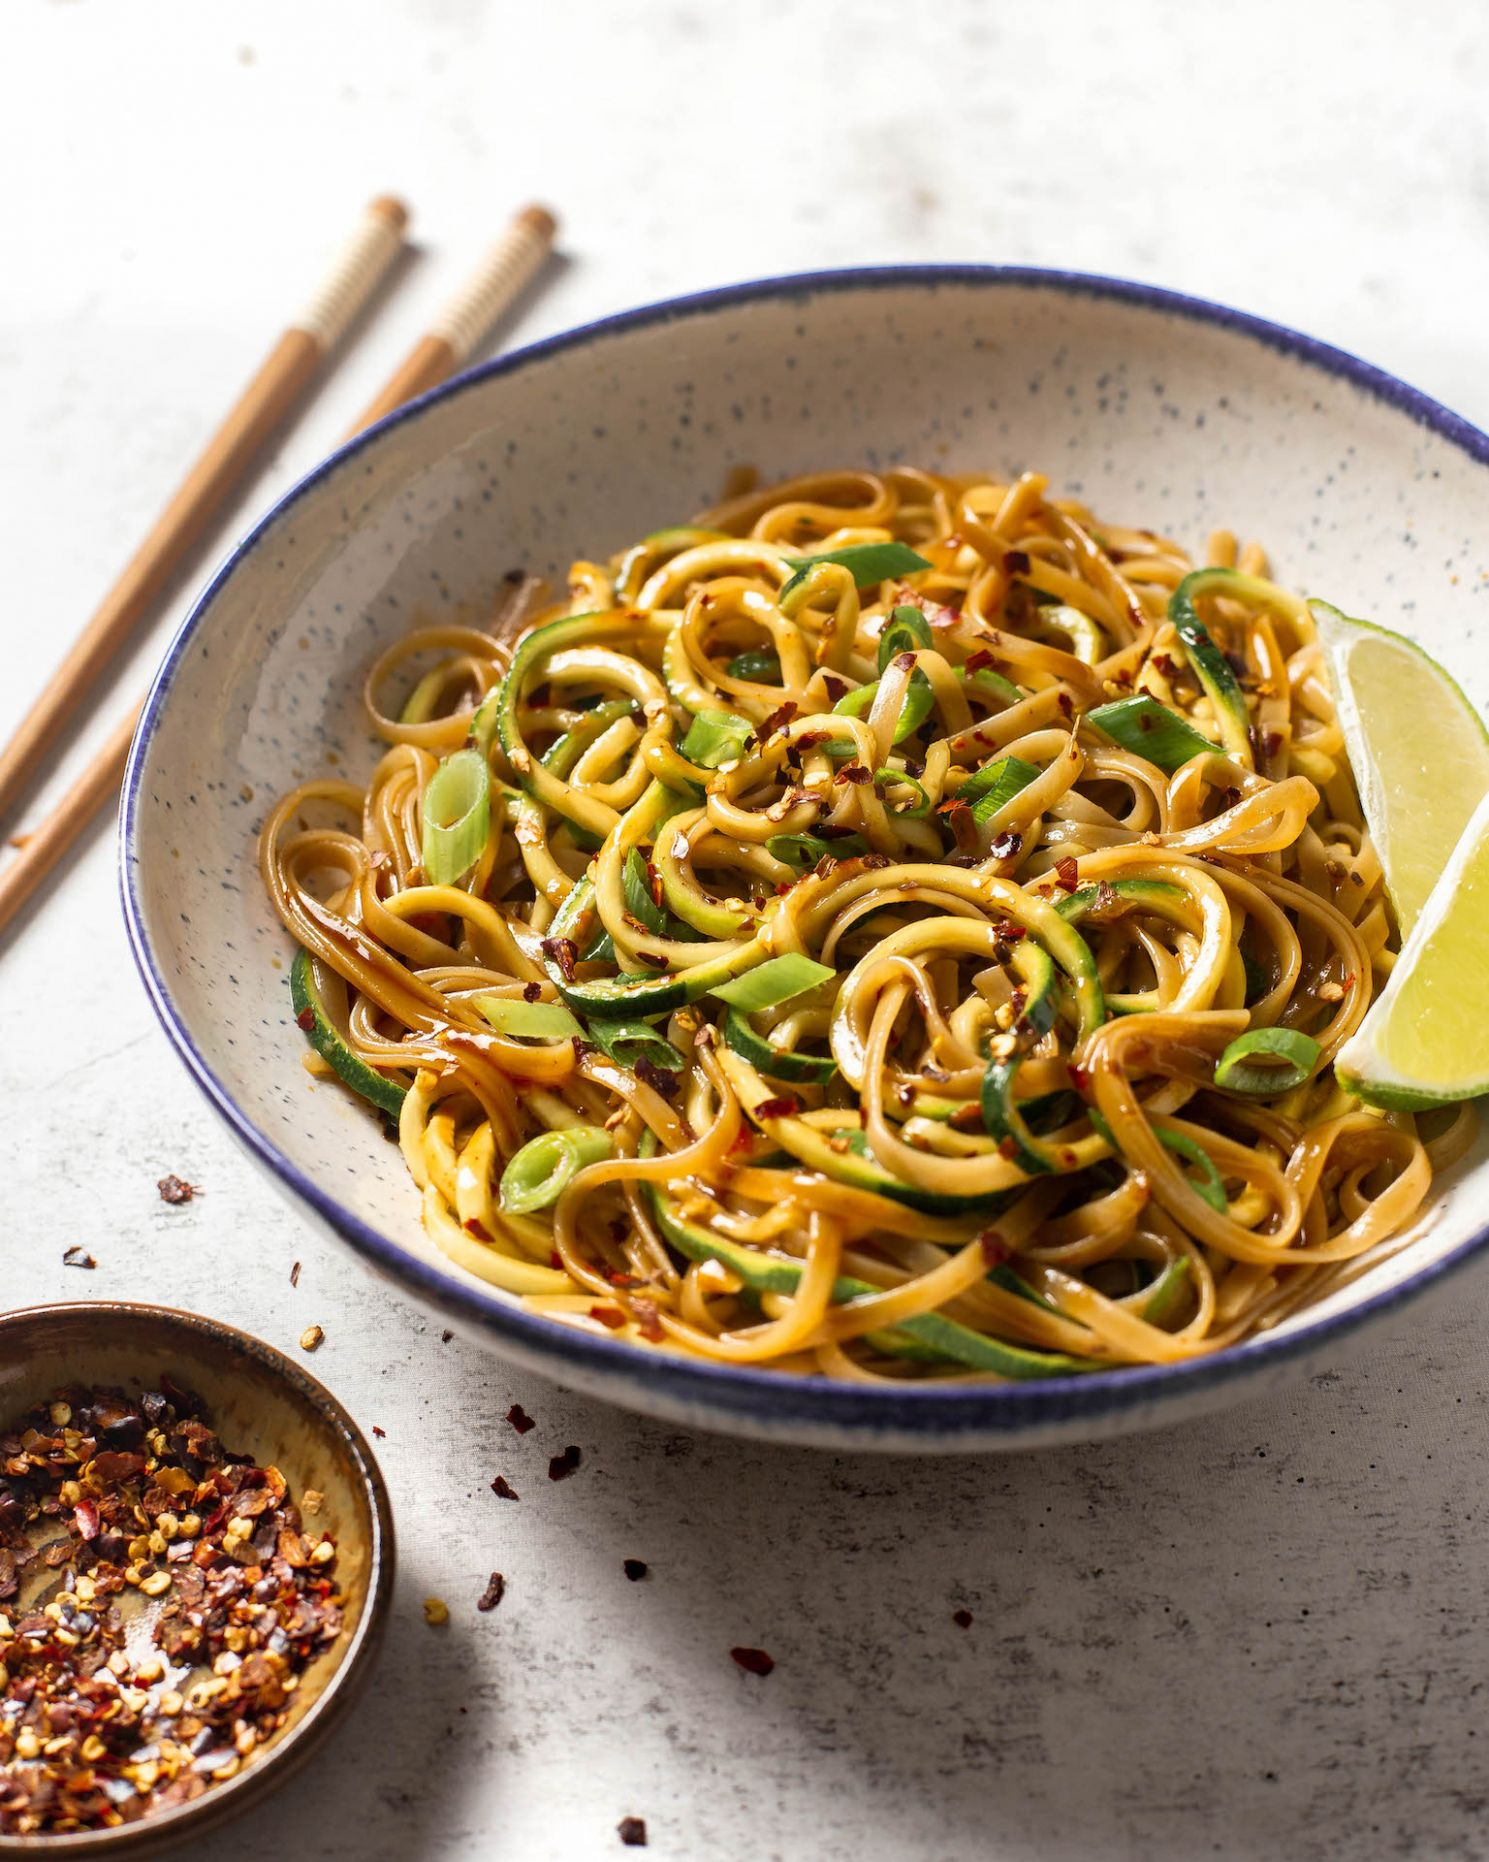 10-Minute Chili Garlic Brown Rice Noodles & Zoodles